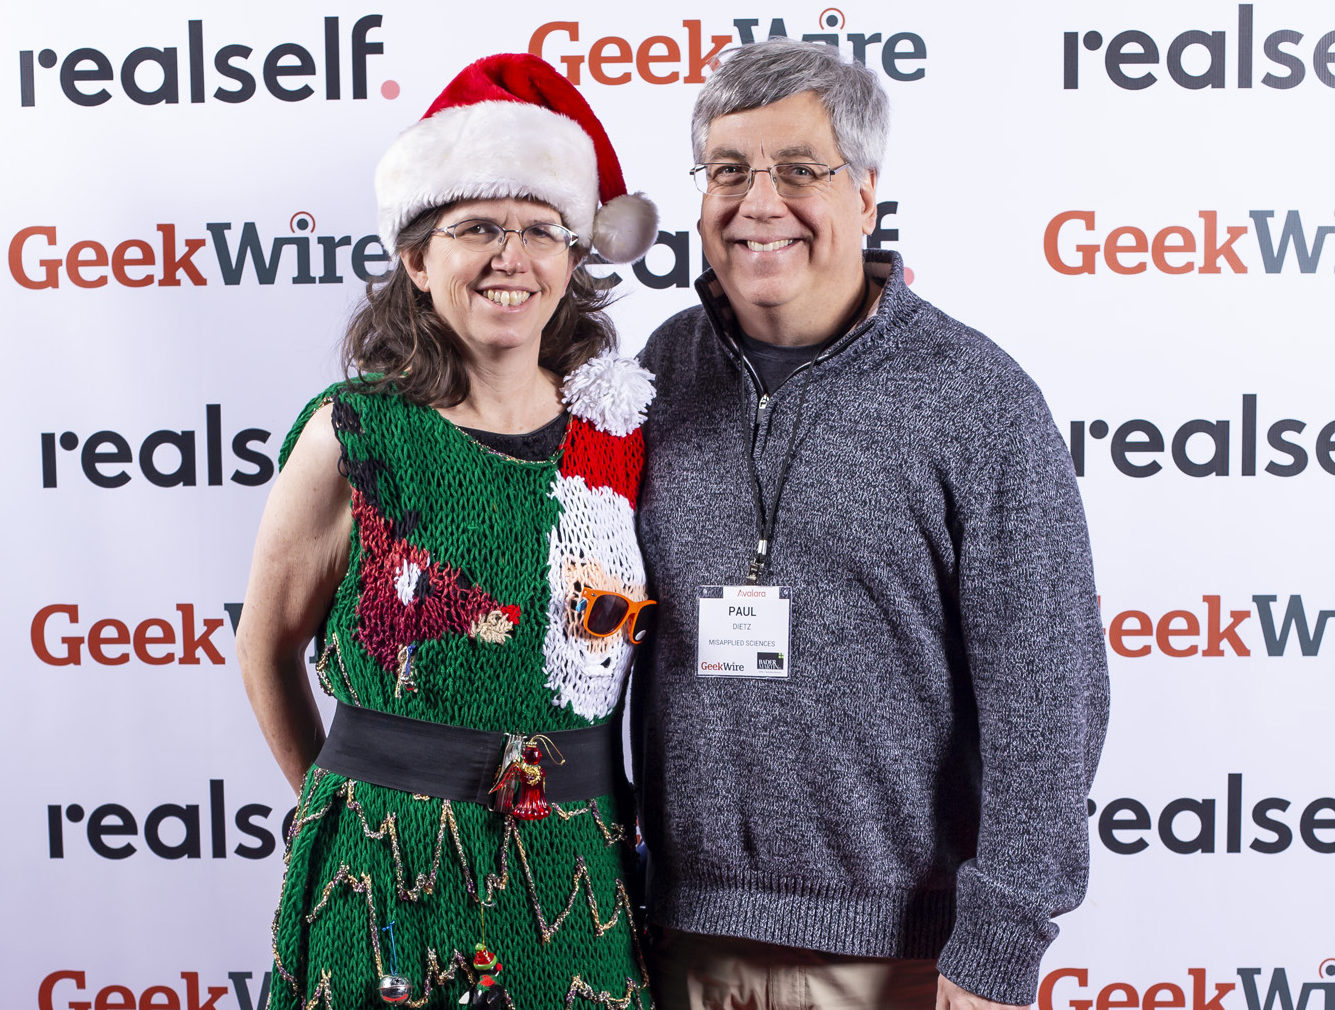 A talking ugly Christmas sweater? Check out this Seattle